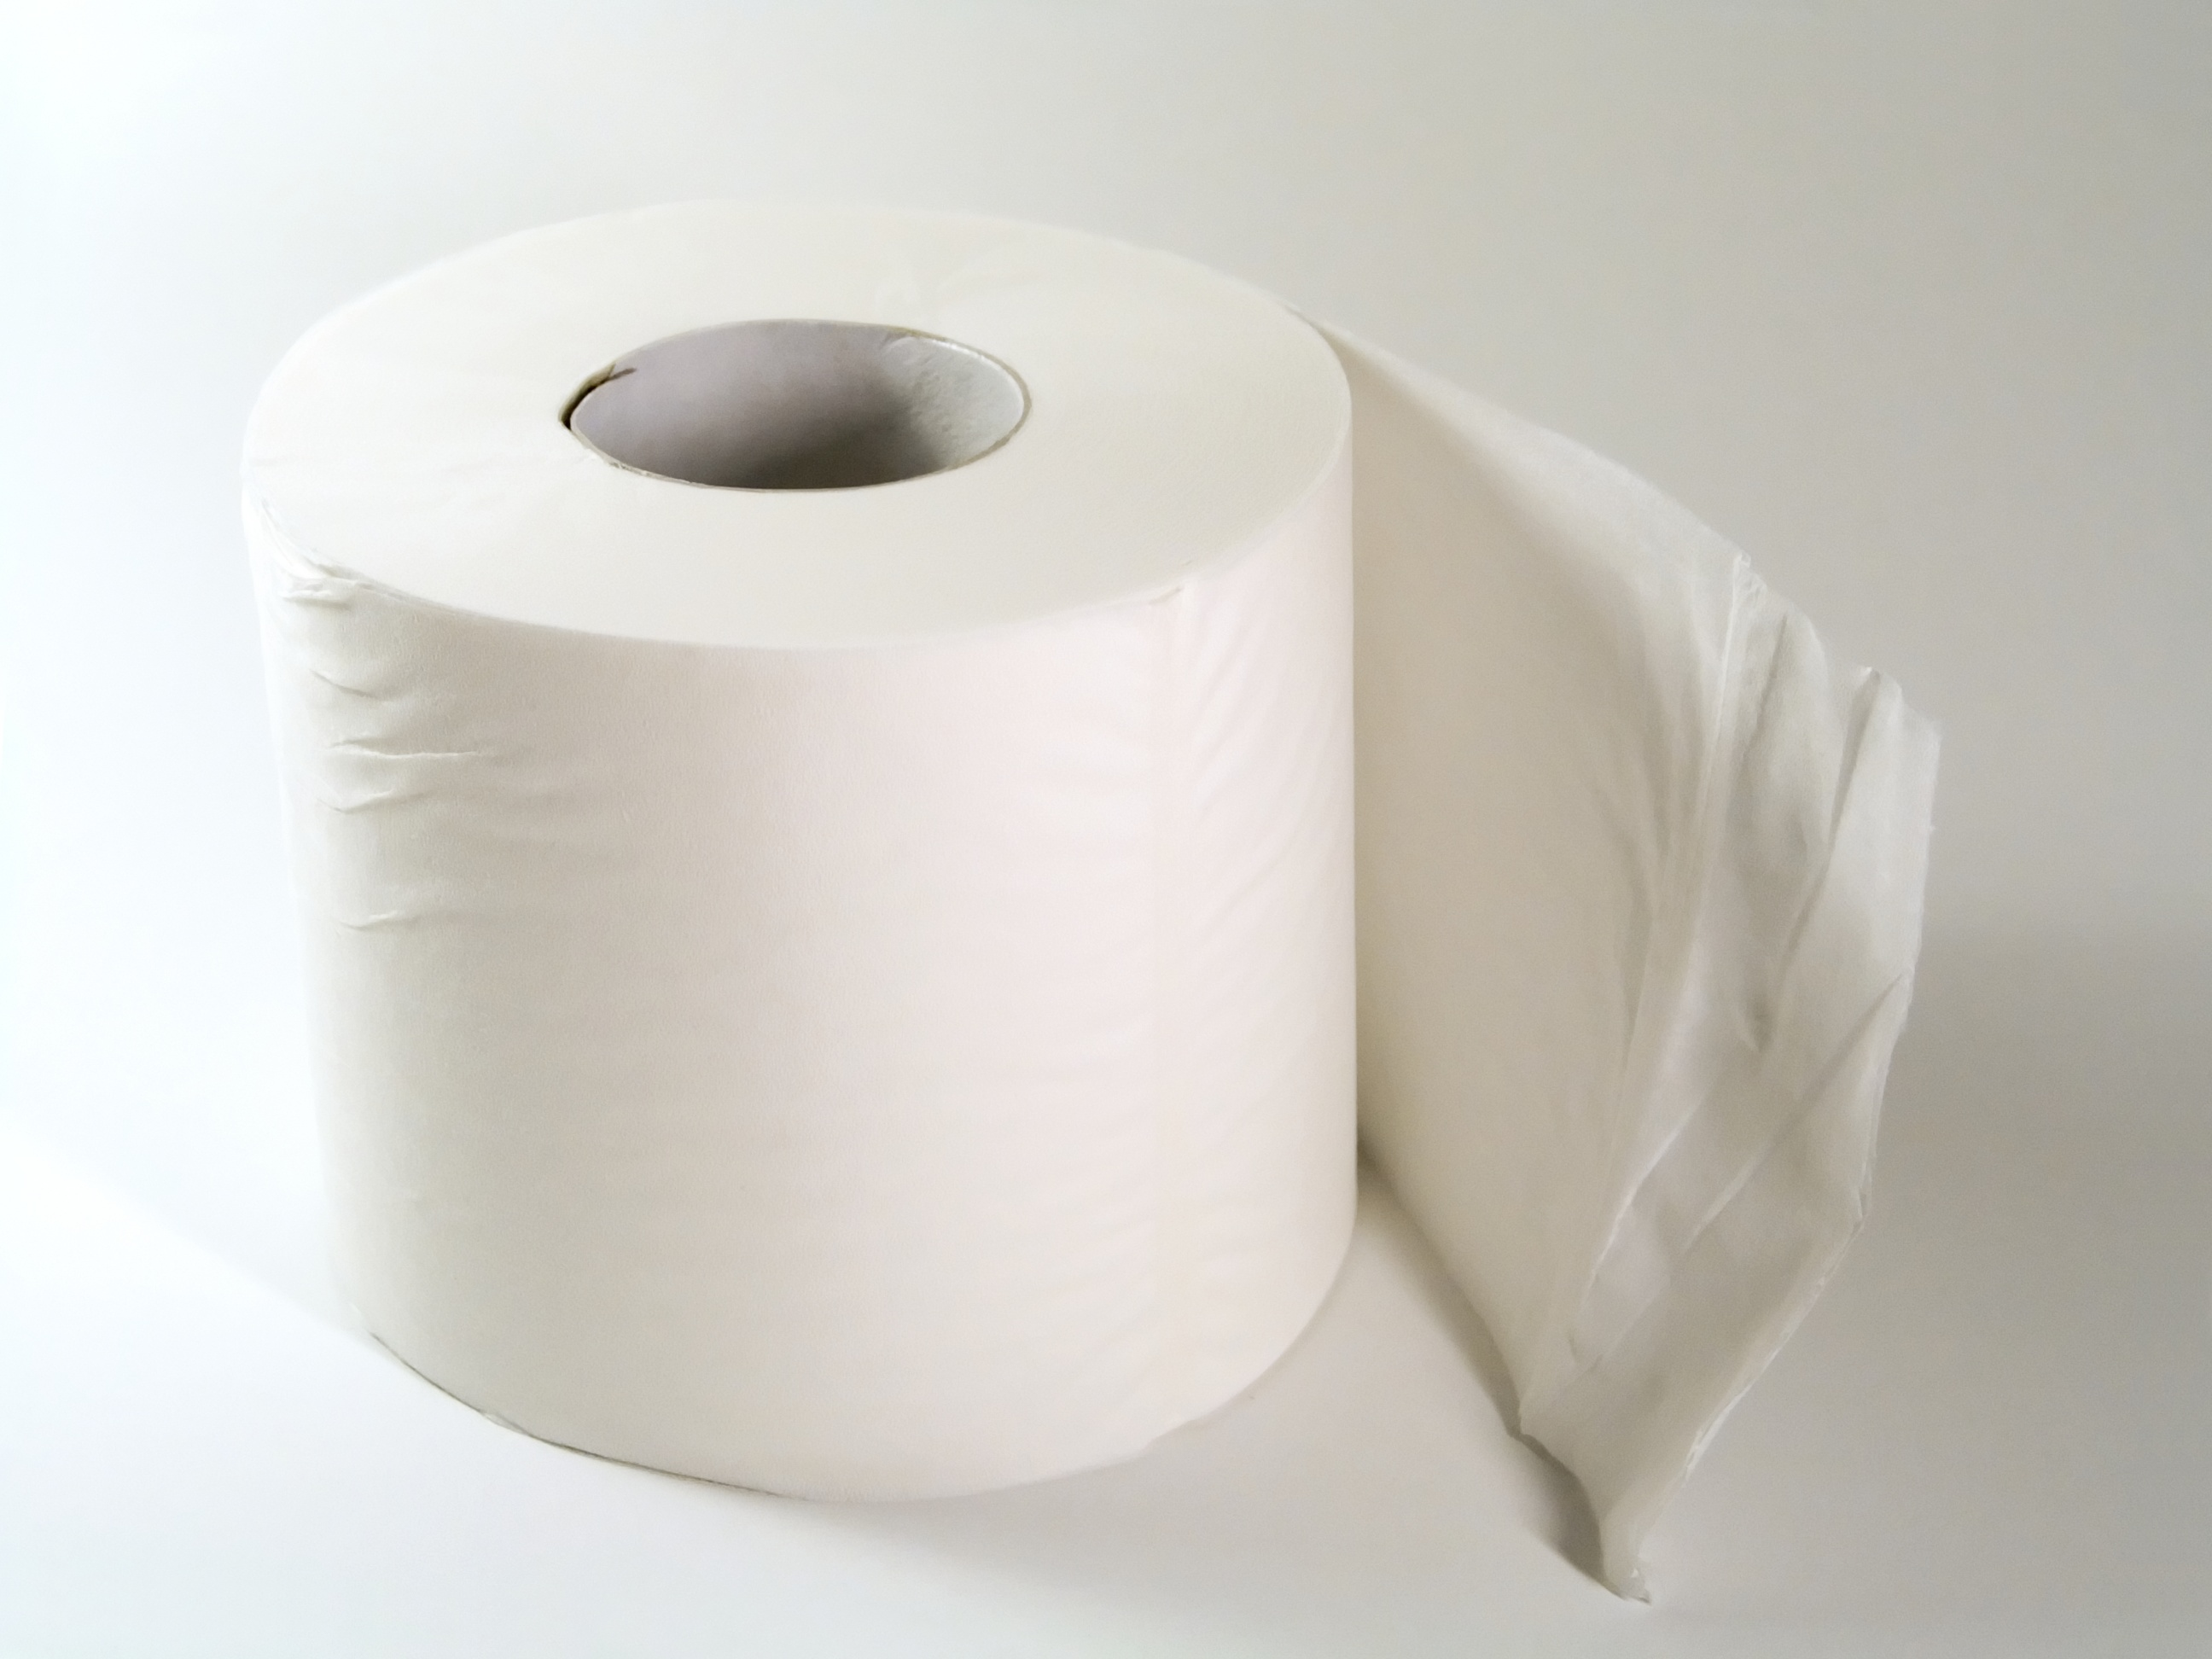 Toilet paper roll Manufacturer,Toilet roll supplier in India